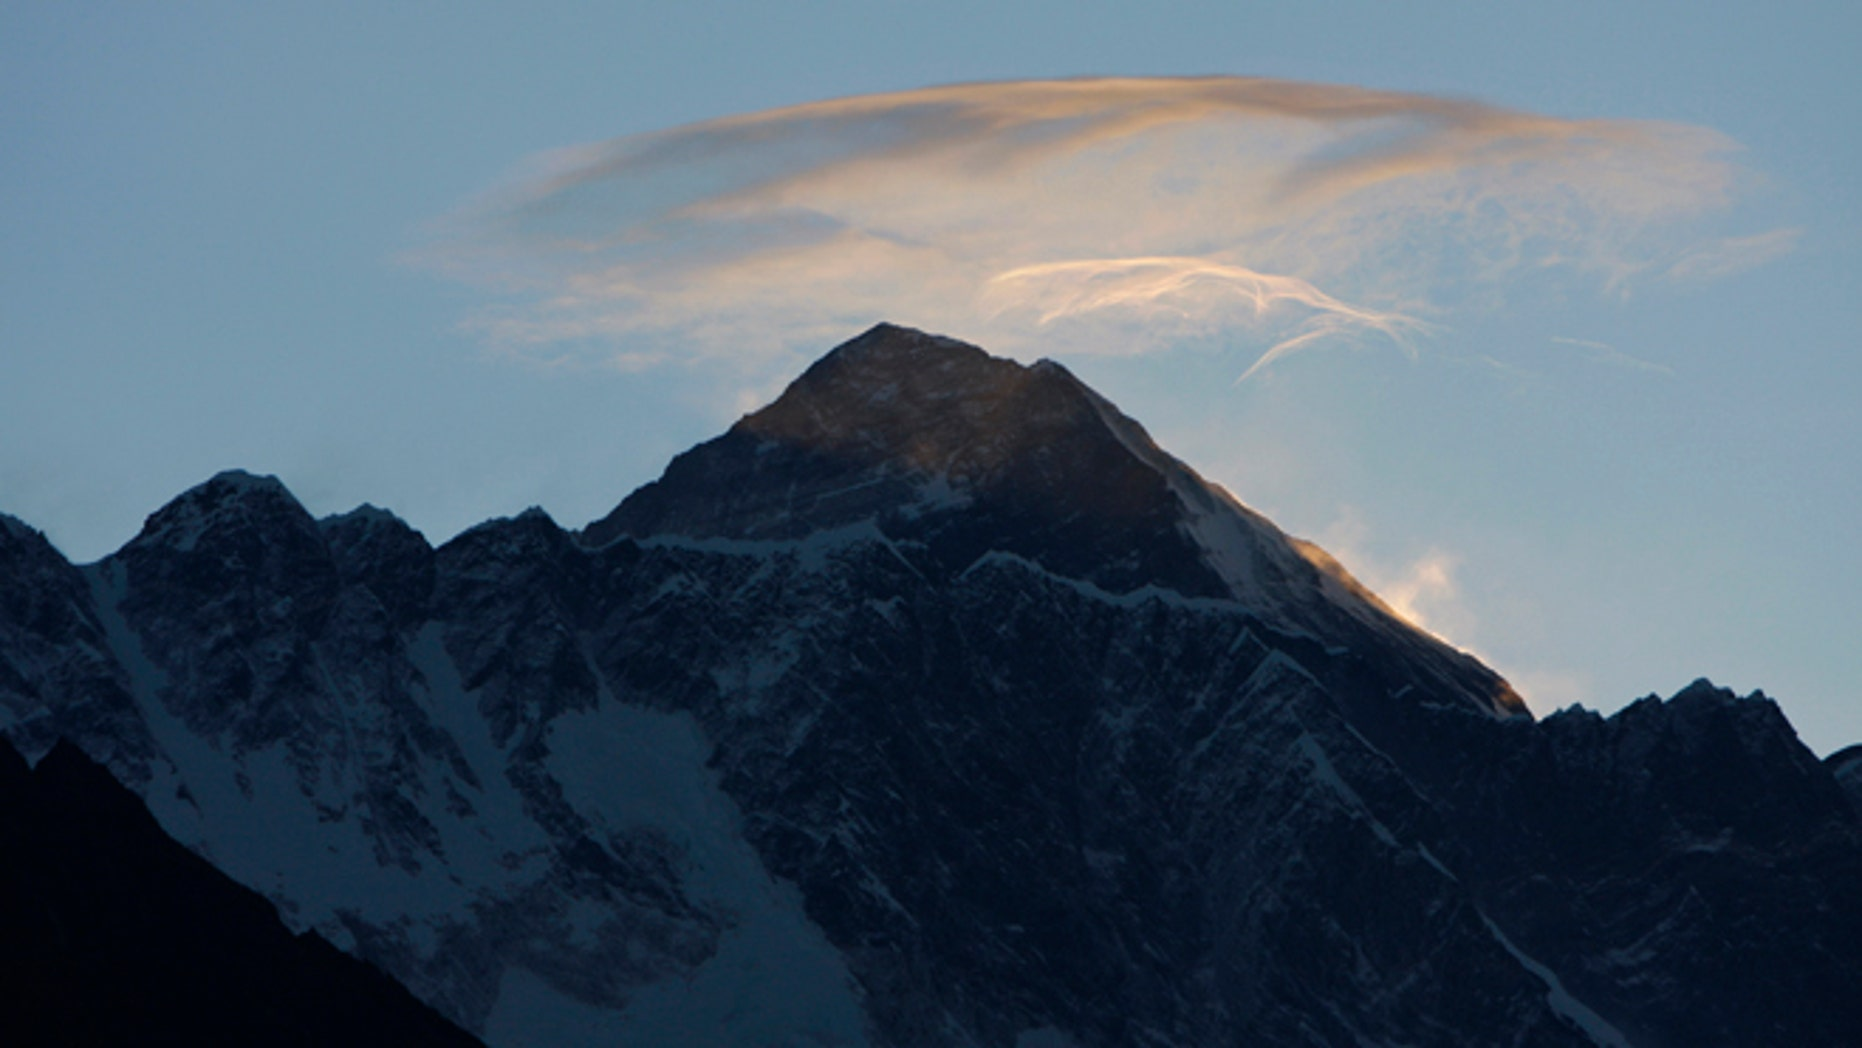 May 19, 2010: Clouds hover above the world's highest peak Mount Everest, as seen from Syangboche, about 125 kilometers (80 miles) northeast of Katmandu, Nepal.